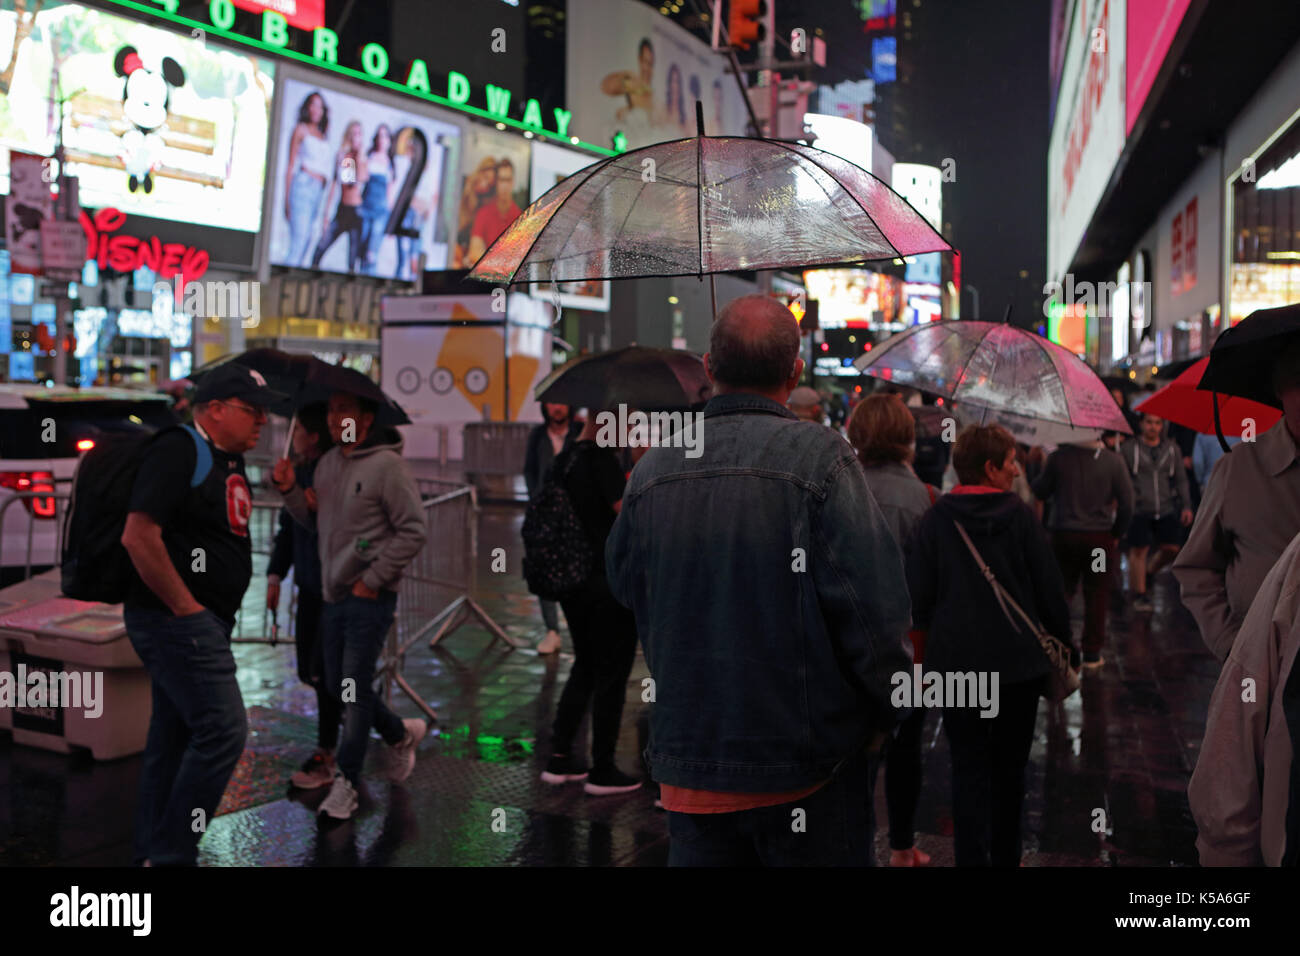 Rainy night in Times Square, tourists with umbrellas walk 7th Avenue and Broadway brightly lit by electric billboard advertising screens - Stock Image